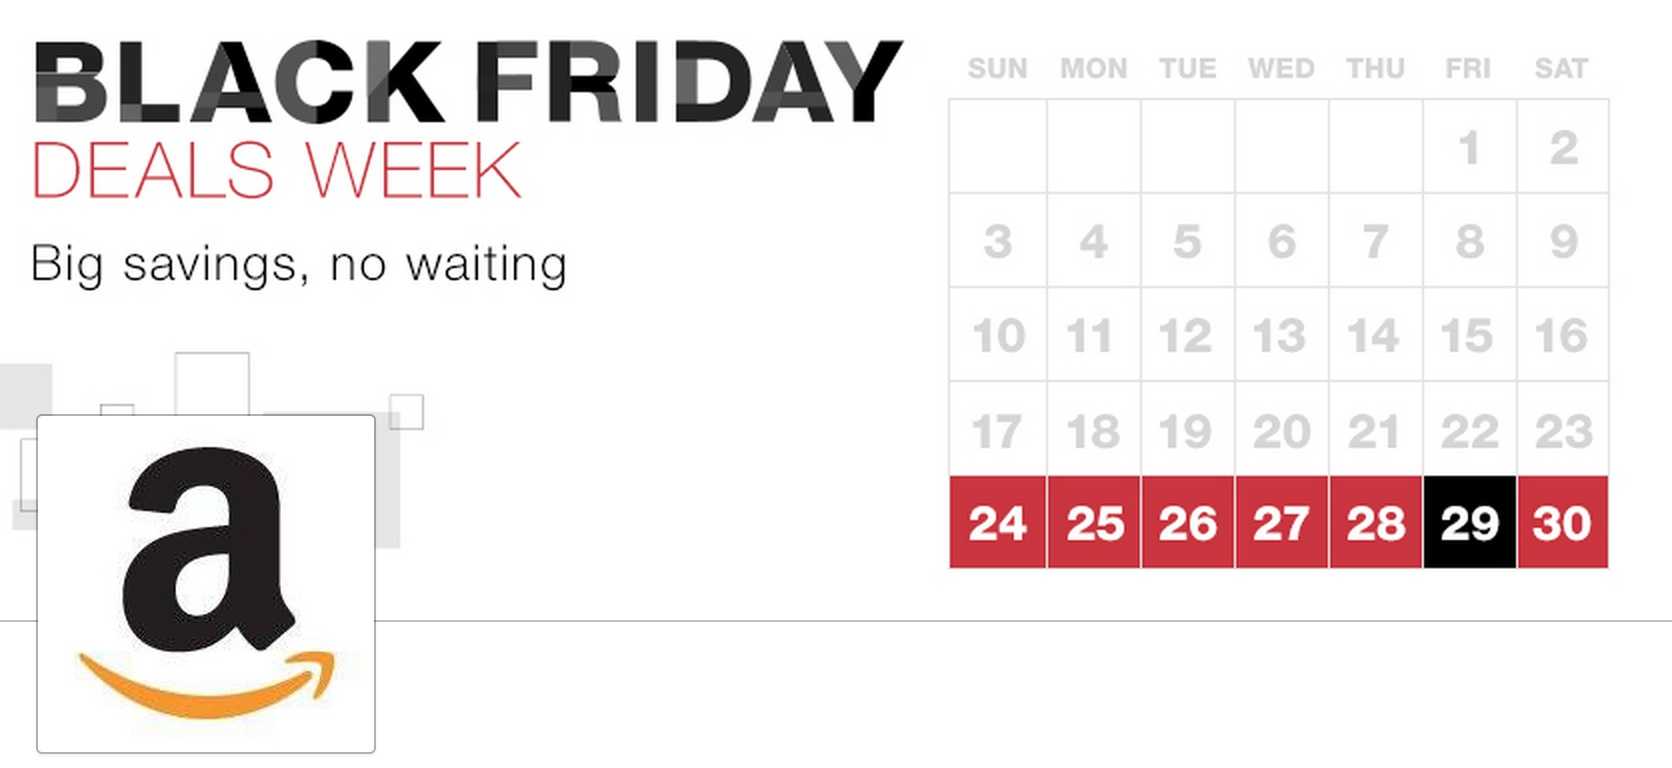 The Amazon Black Friday 2013 deals start now, here's how to track them and get the best deals.